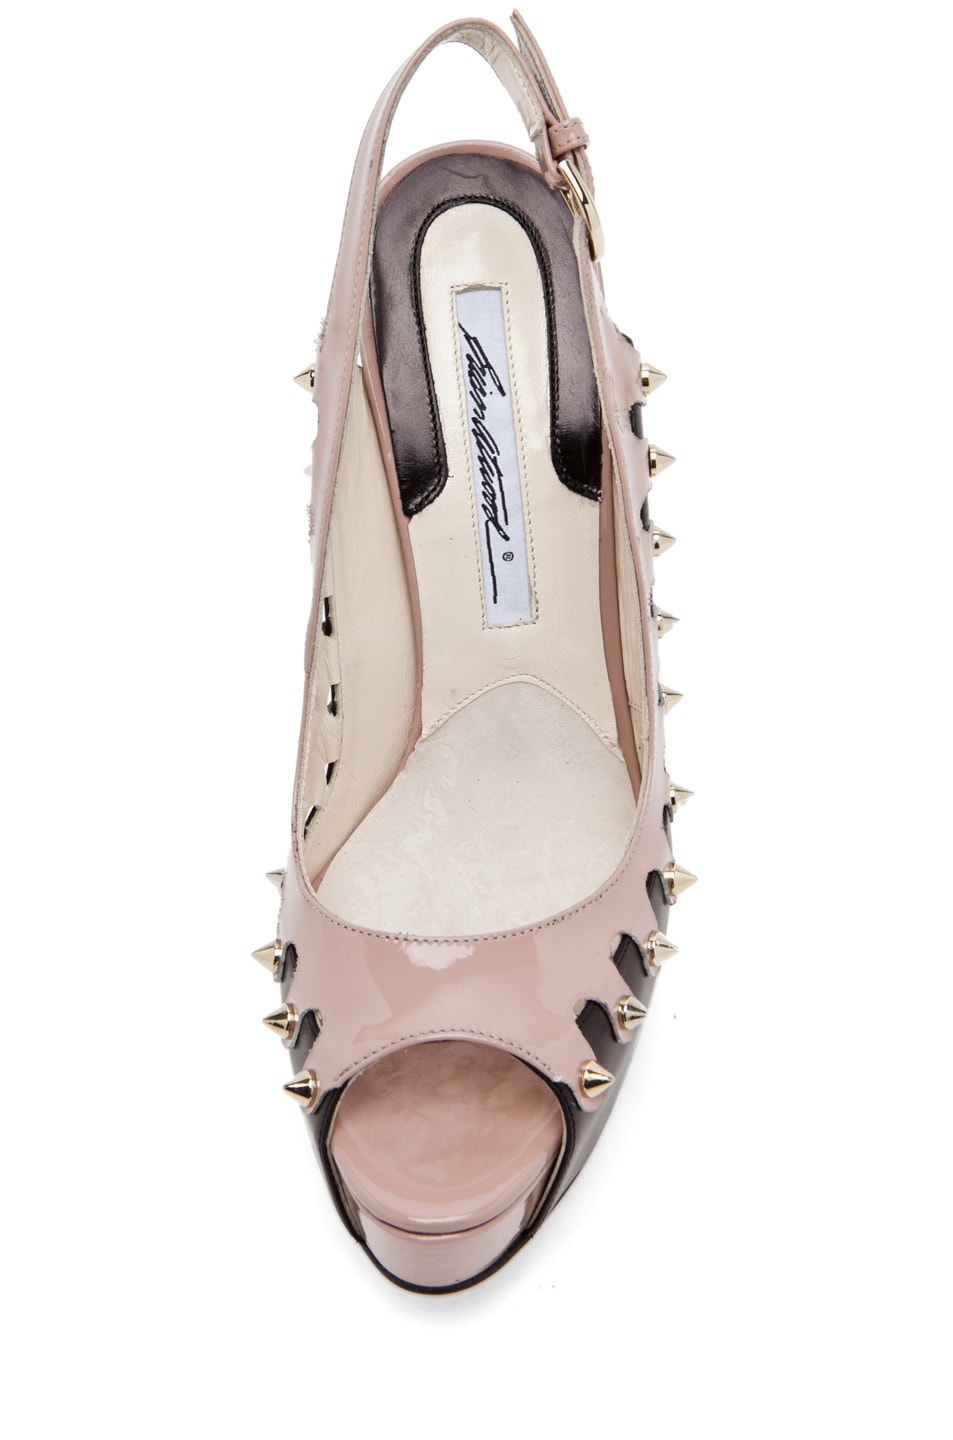 Image 4 of Brian Atwood Neela in Black/Cappuccino Nude